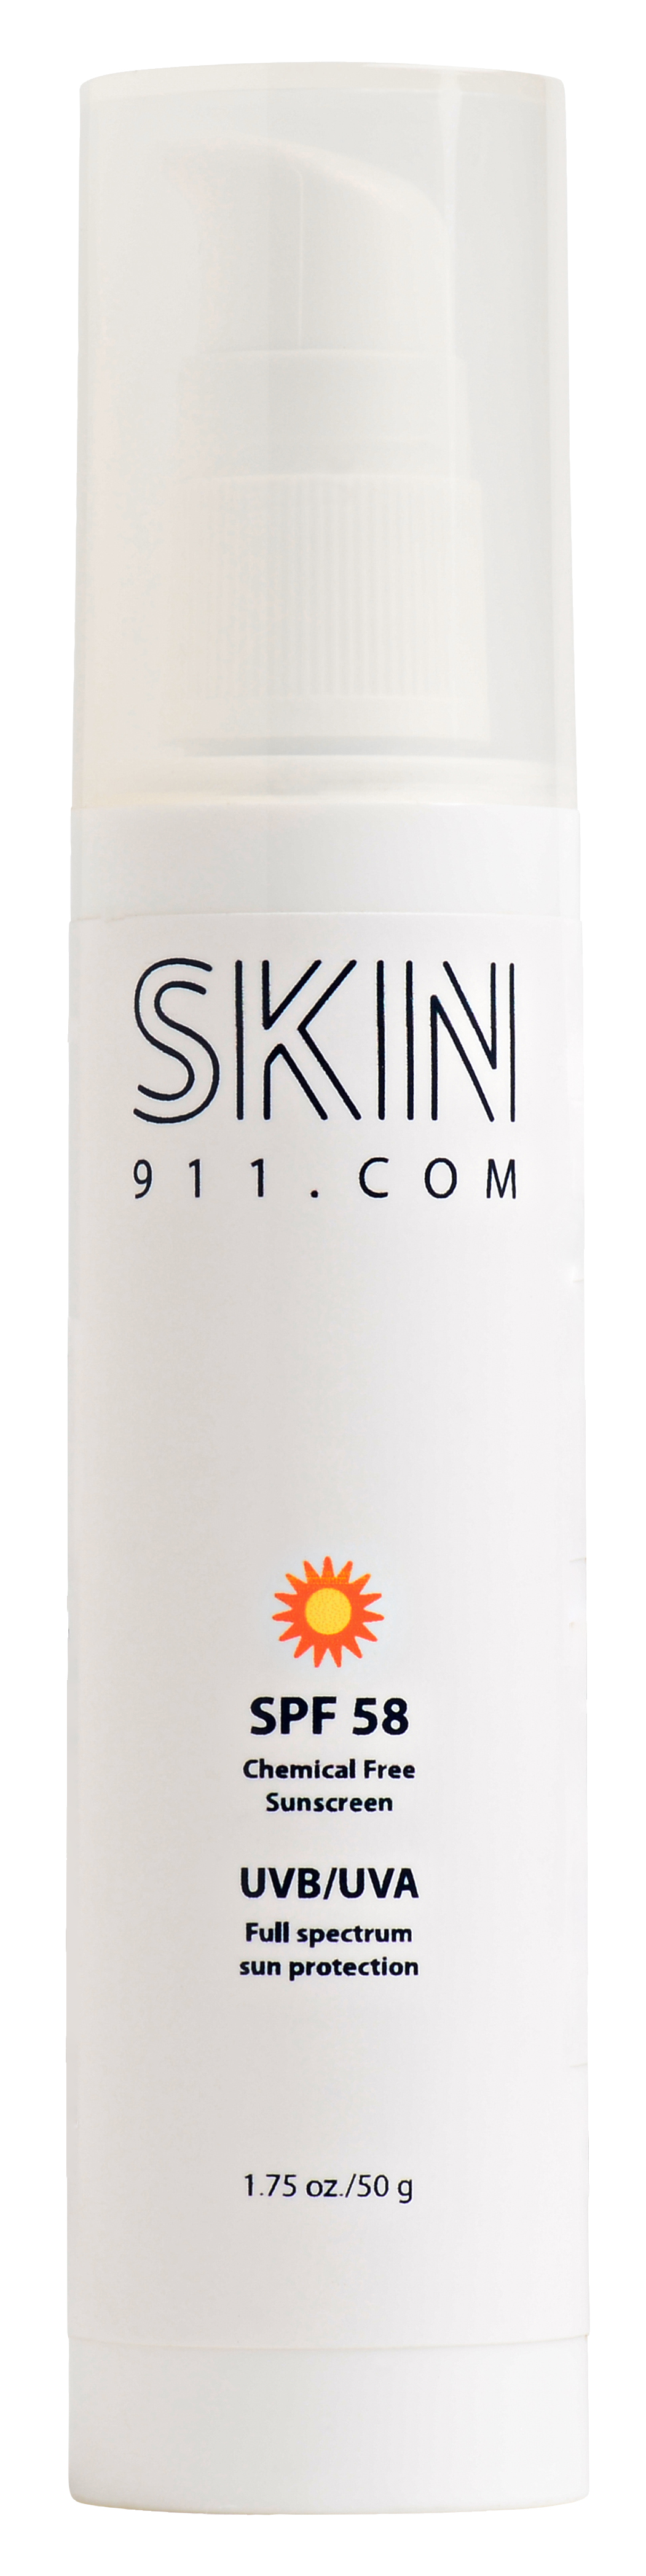 chemical-free-sunscreen-spf58.jpg